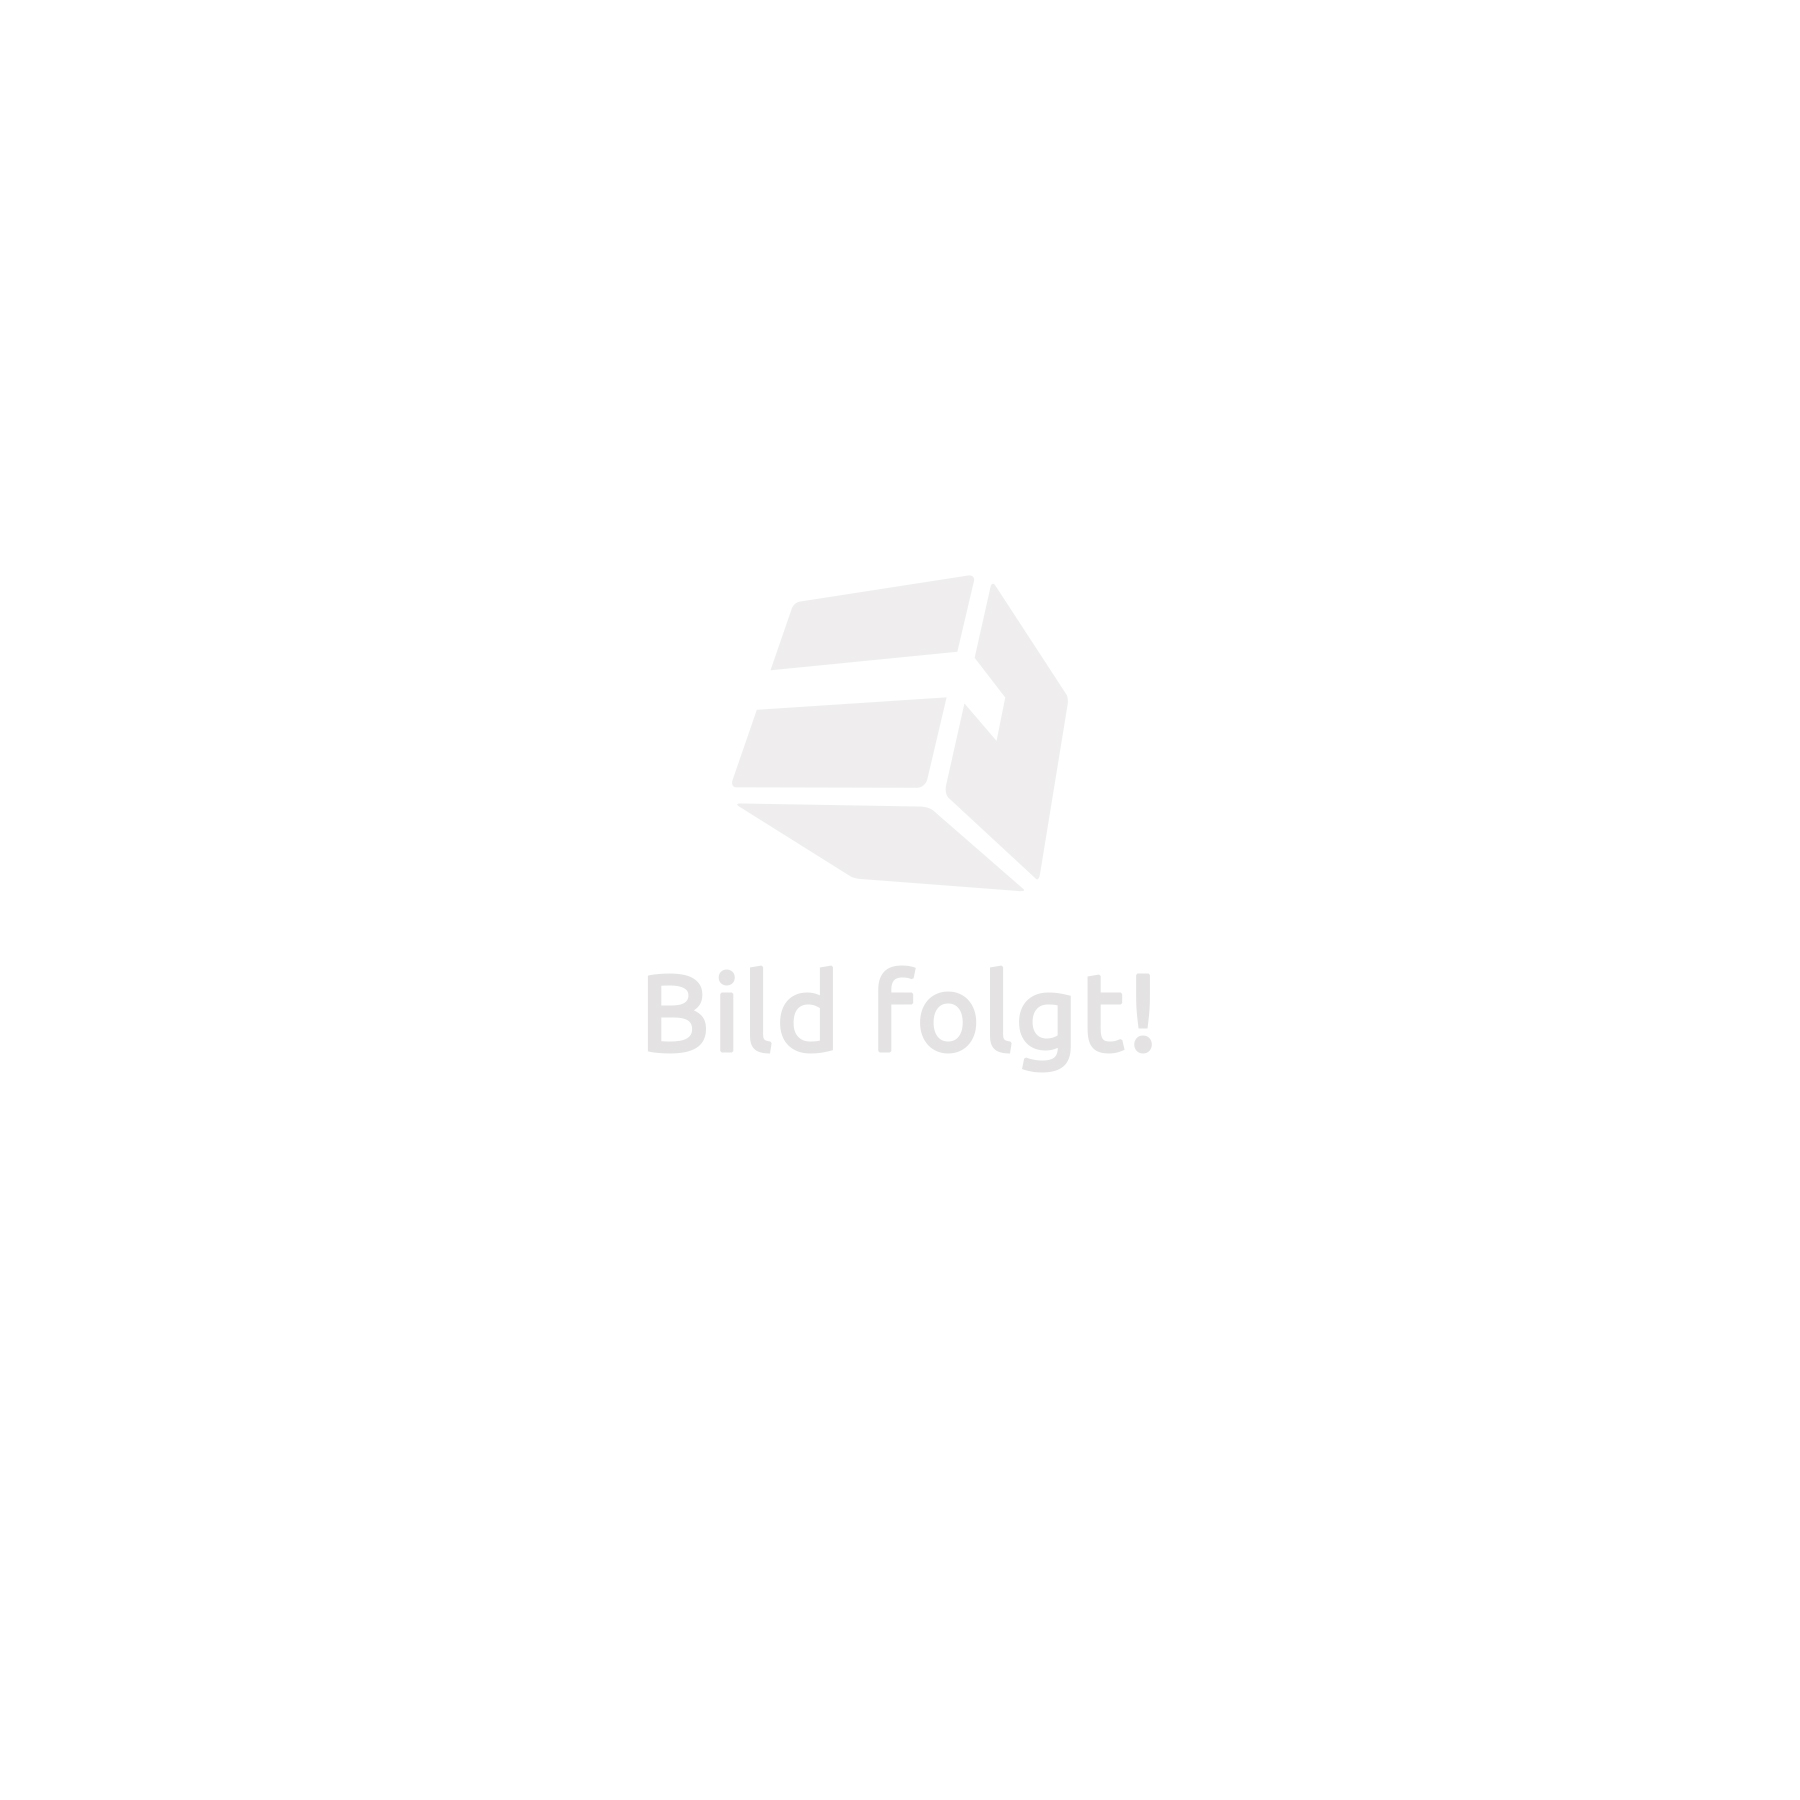 polyrattan aluminium barset tisch 6 barhocker rattan bar theke poolbar braun ebay. Black Bedroom Furniture Sets. Home Design Ideas